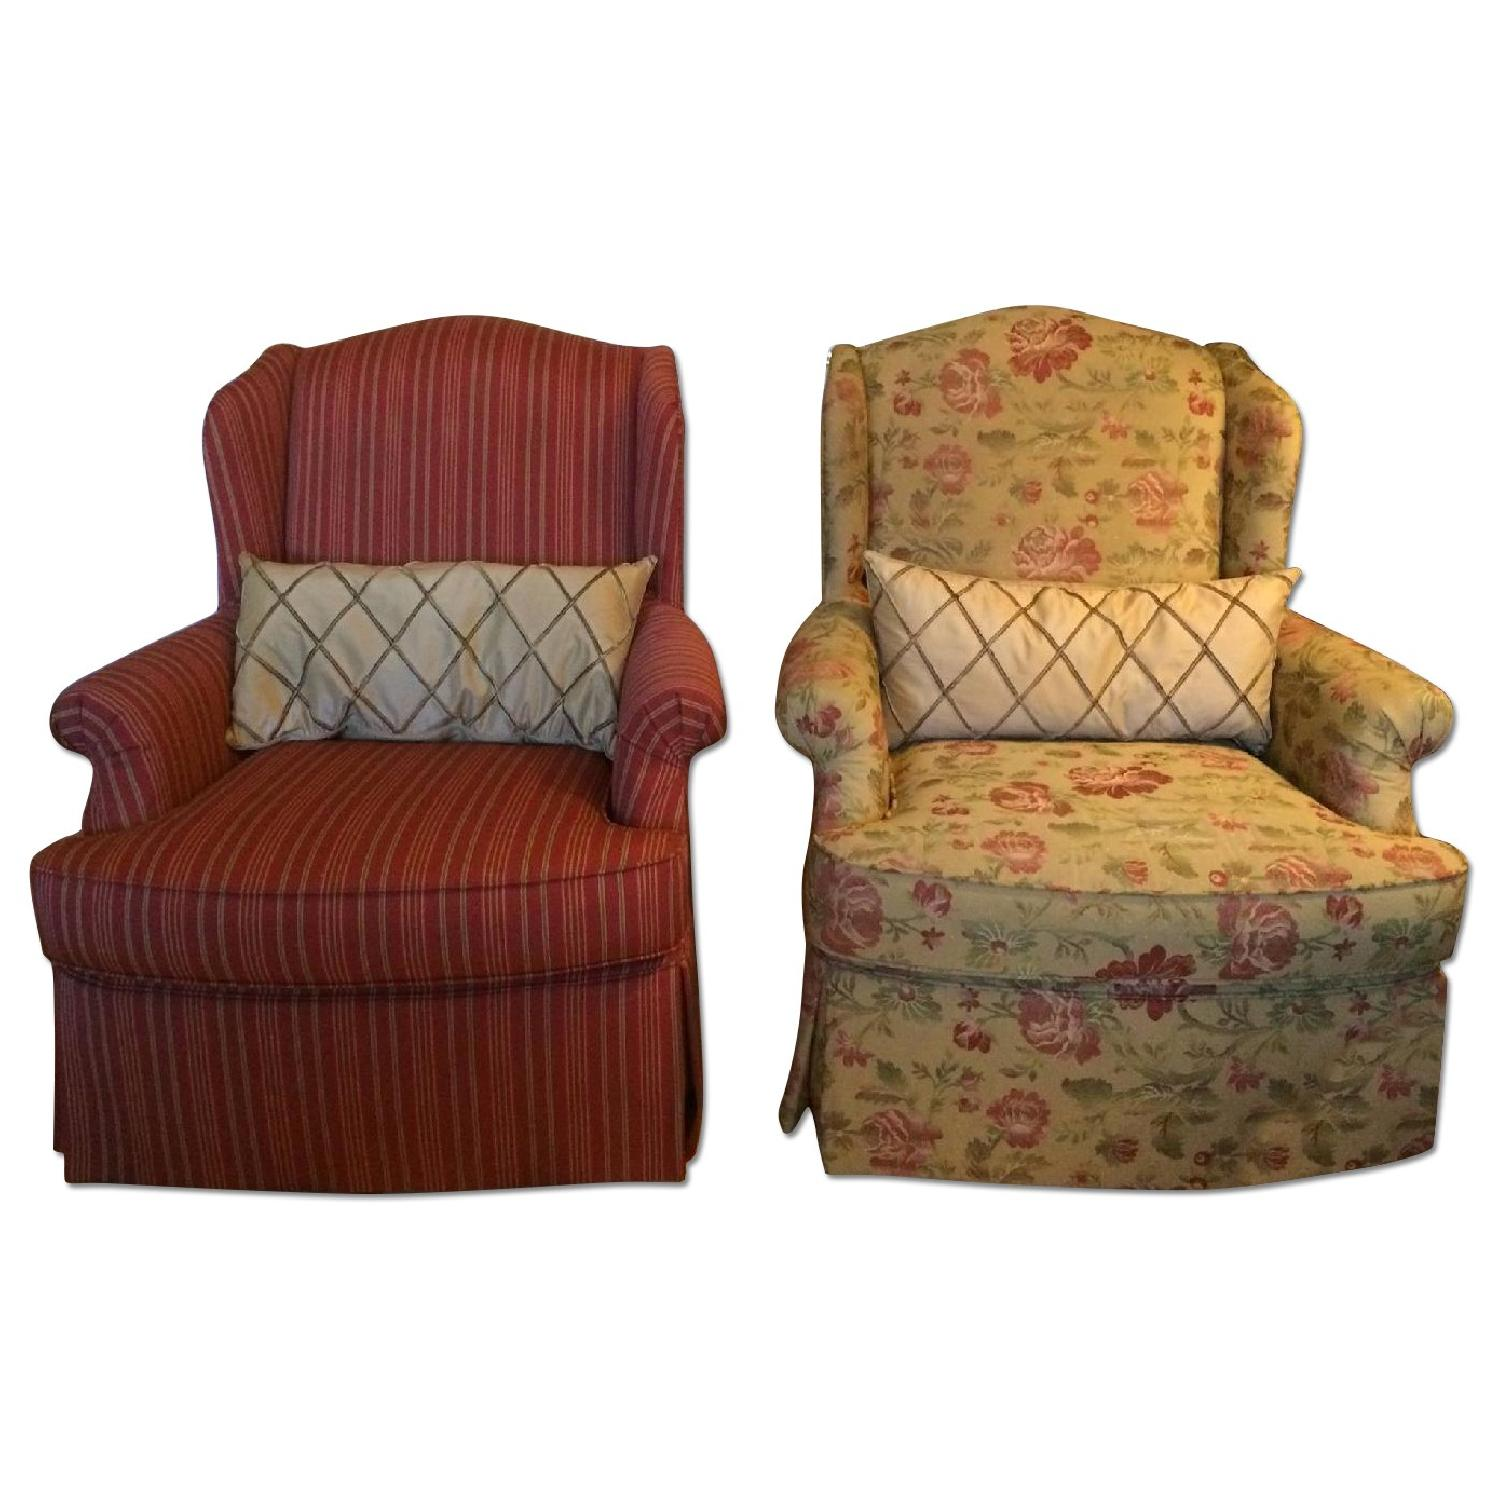 French Country Custom Upholstered Chairs - Pair - image-0